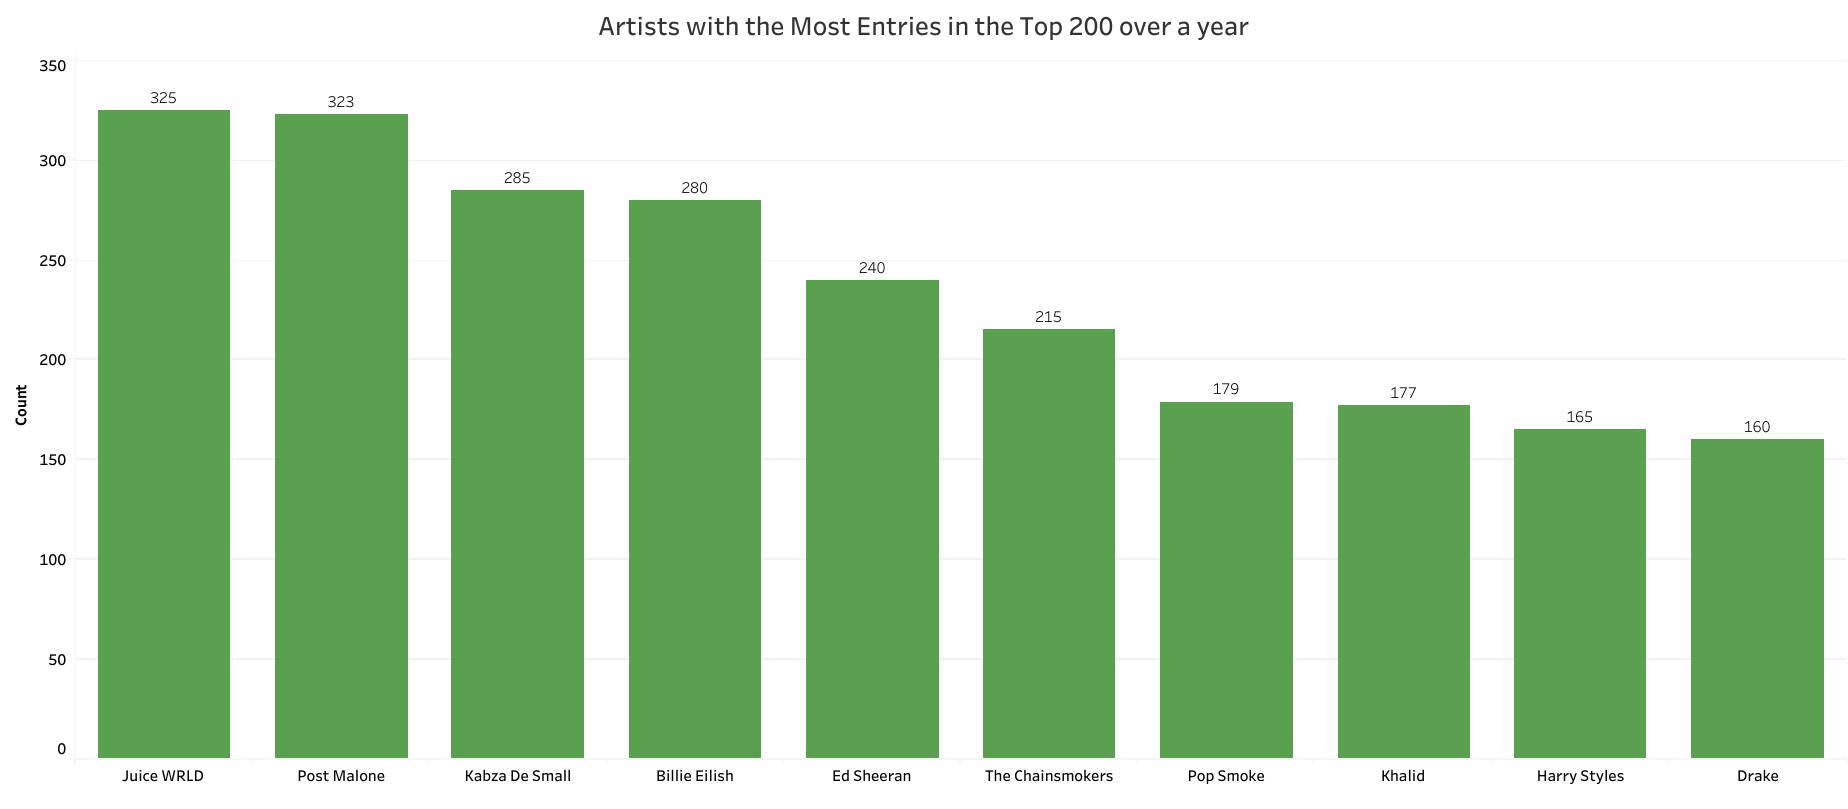 Artists with the most entries